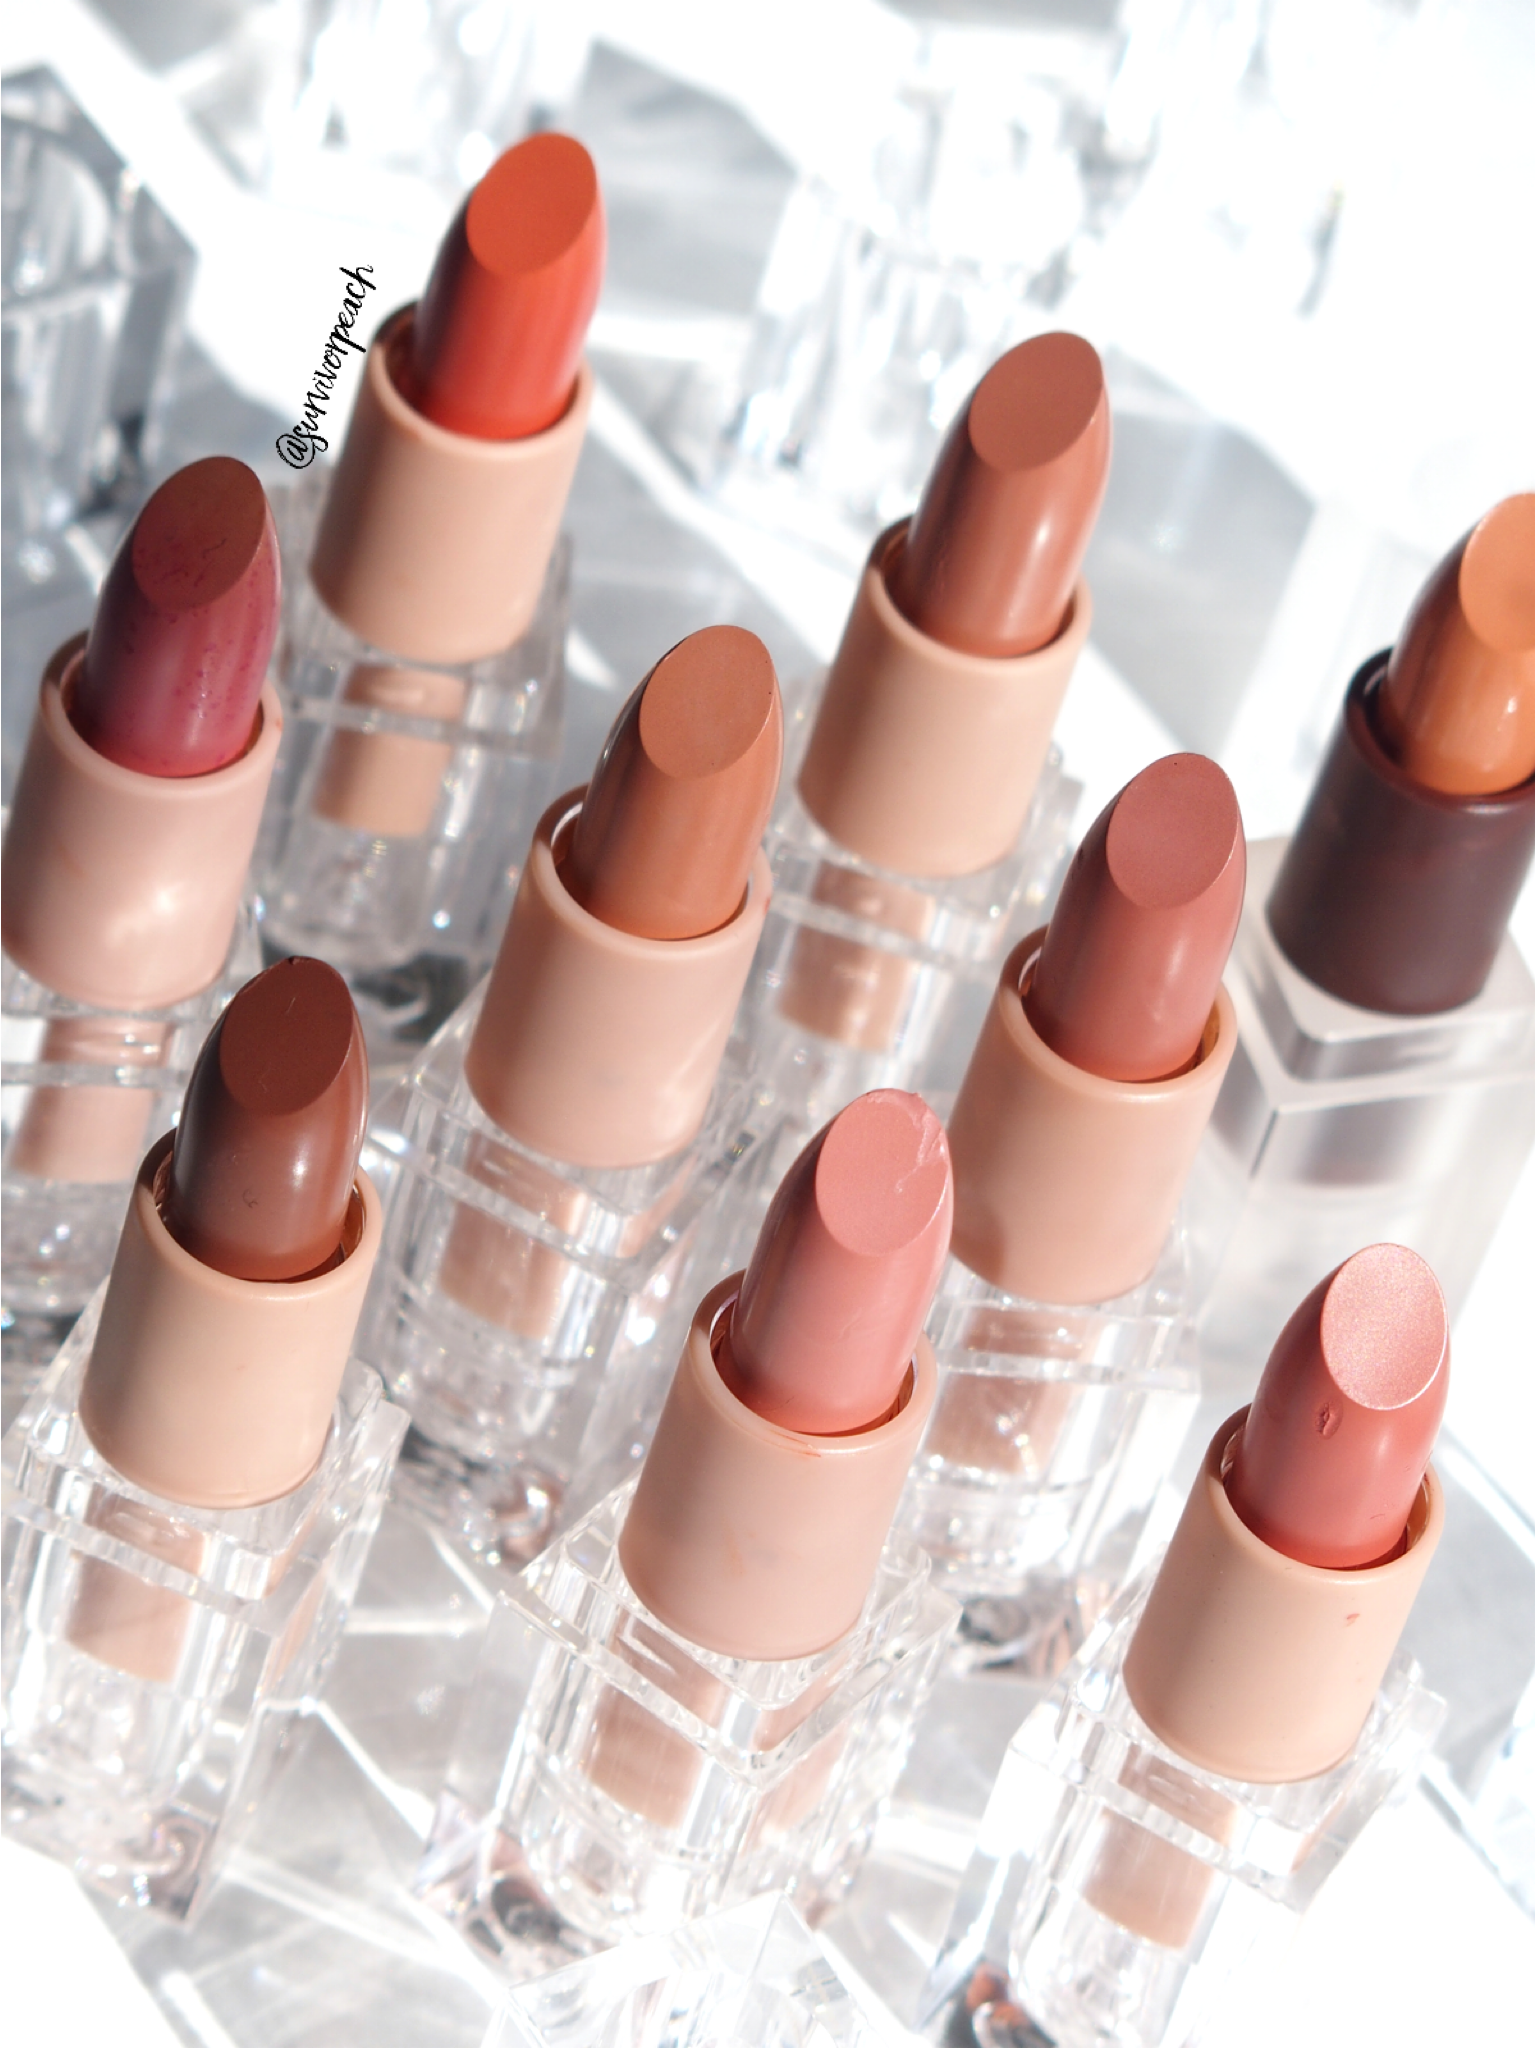 Kkw Beauty Creme Lipsticks Review And Swatches Survivorpeach